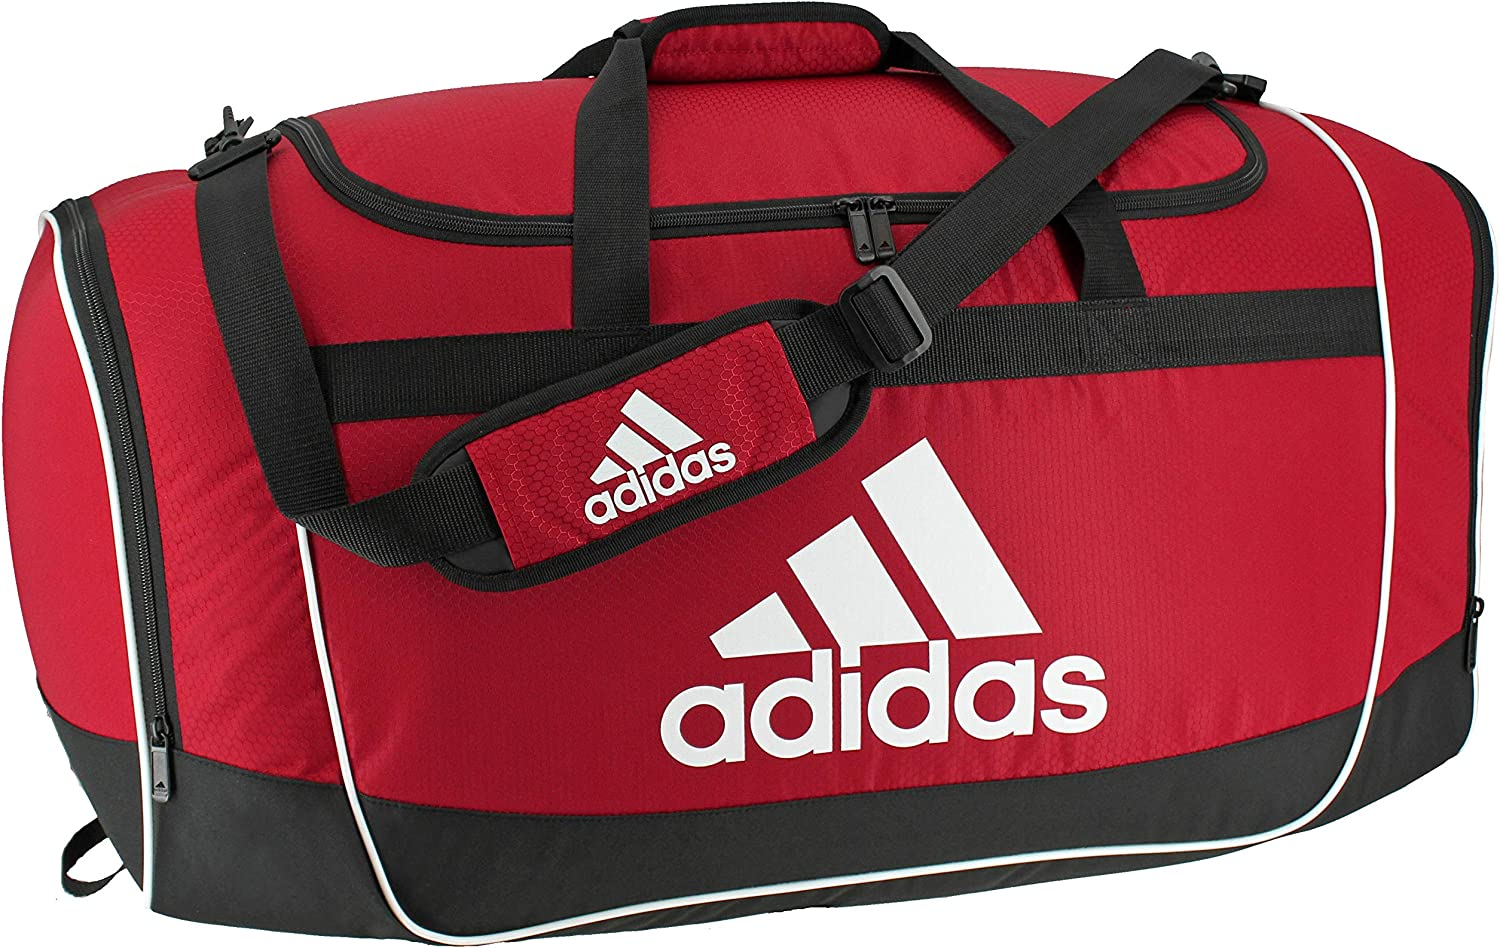 adidas Unisex Defender II Medium Duffel Bag, Power Red, ONE SIZE